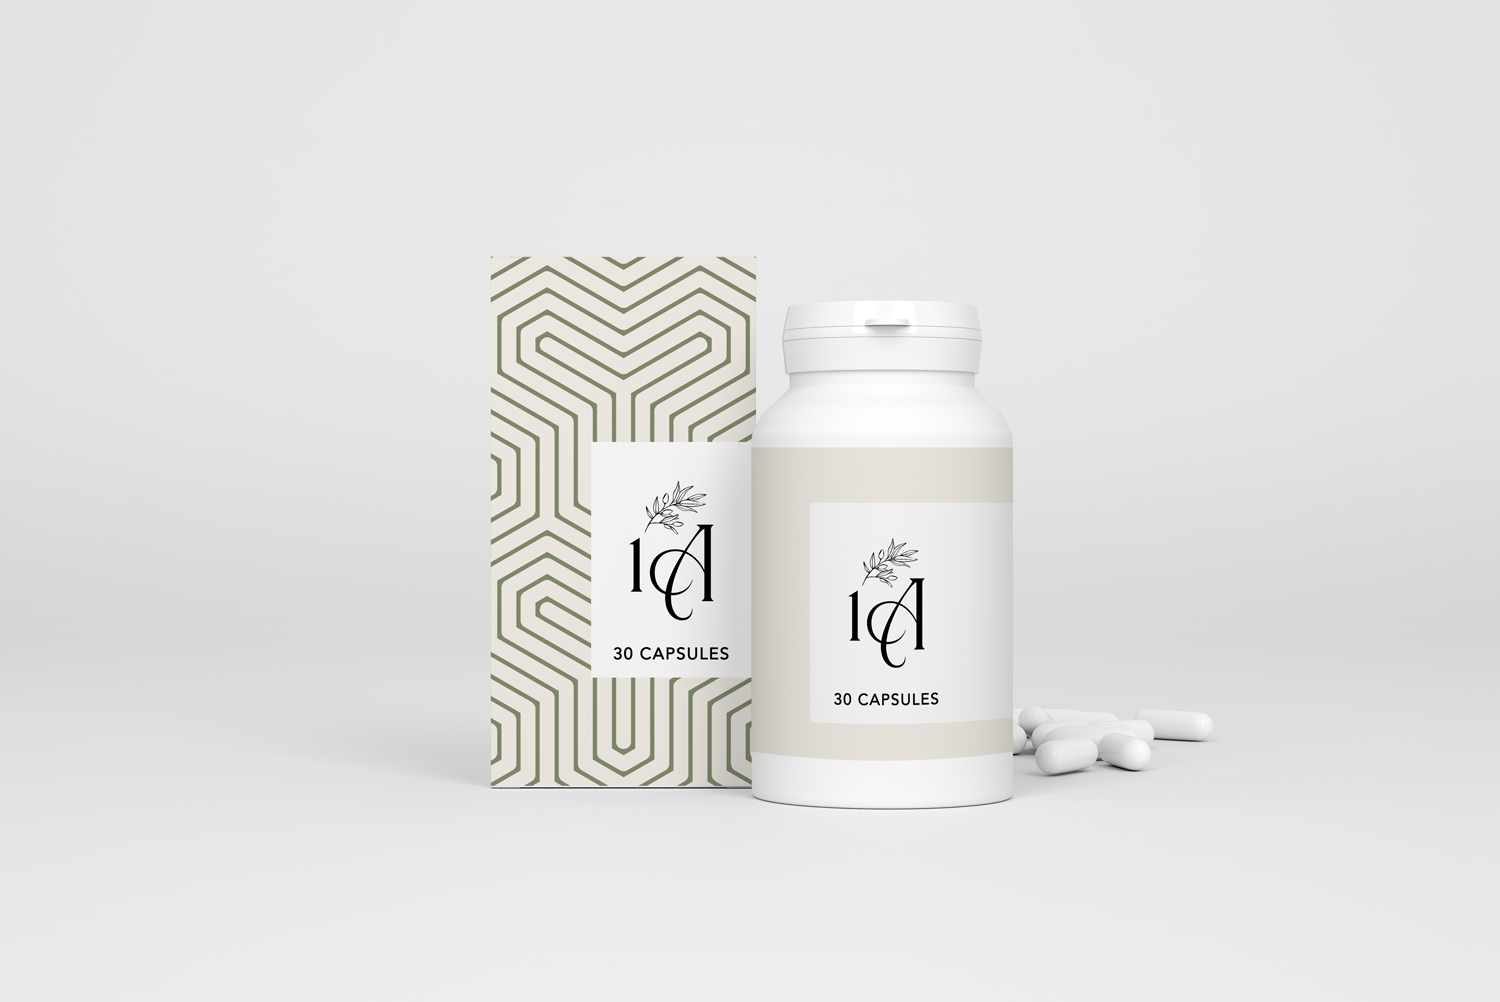 nutrition_supplements_package_design